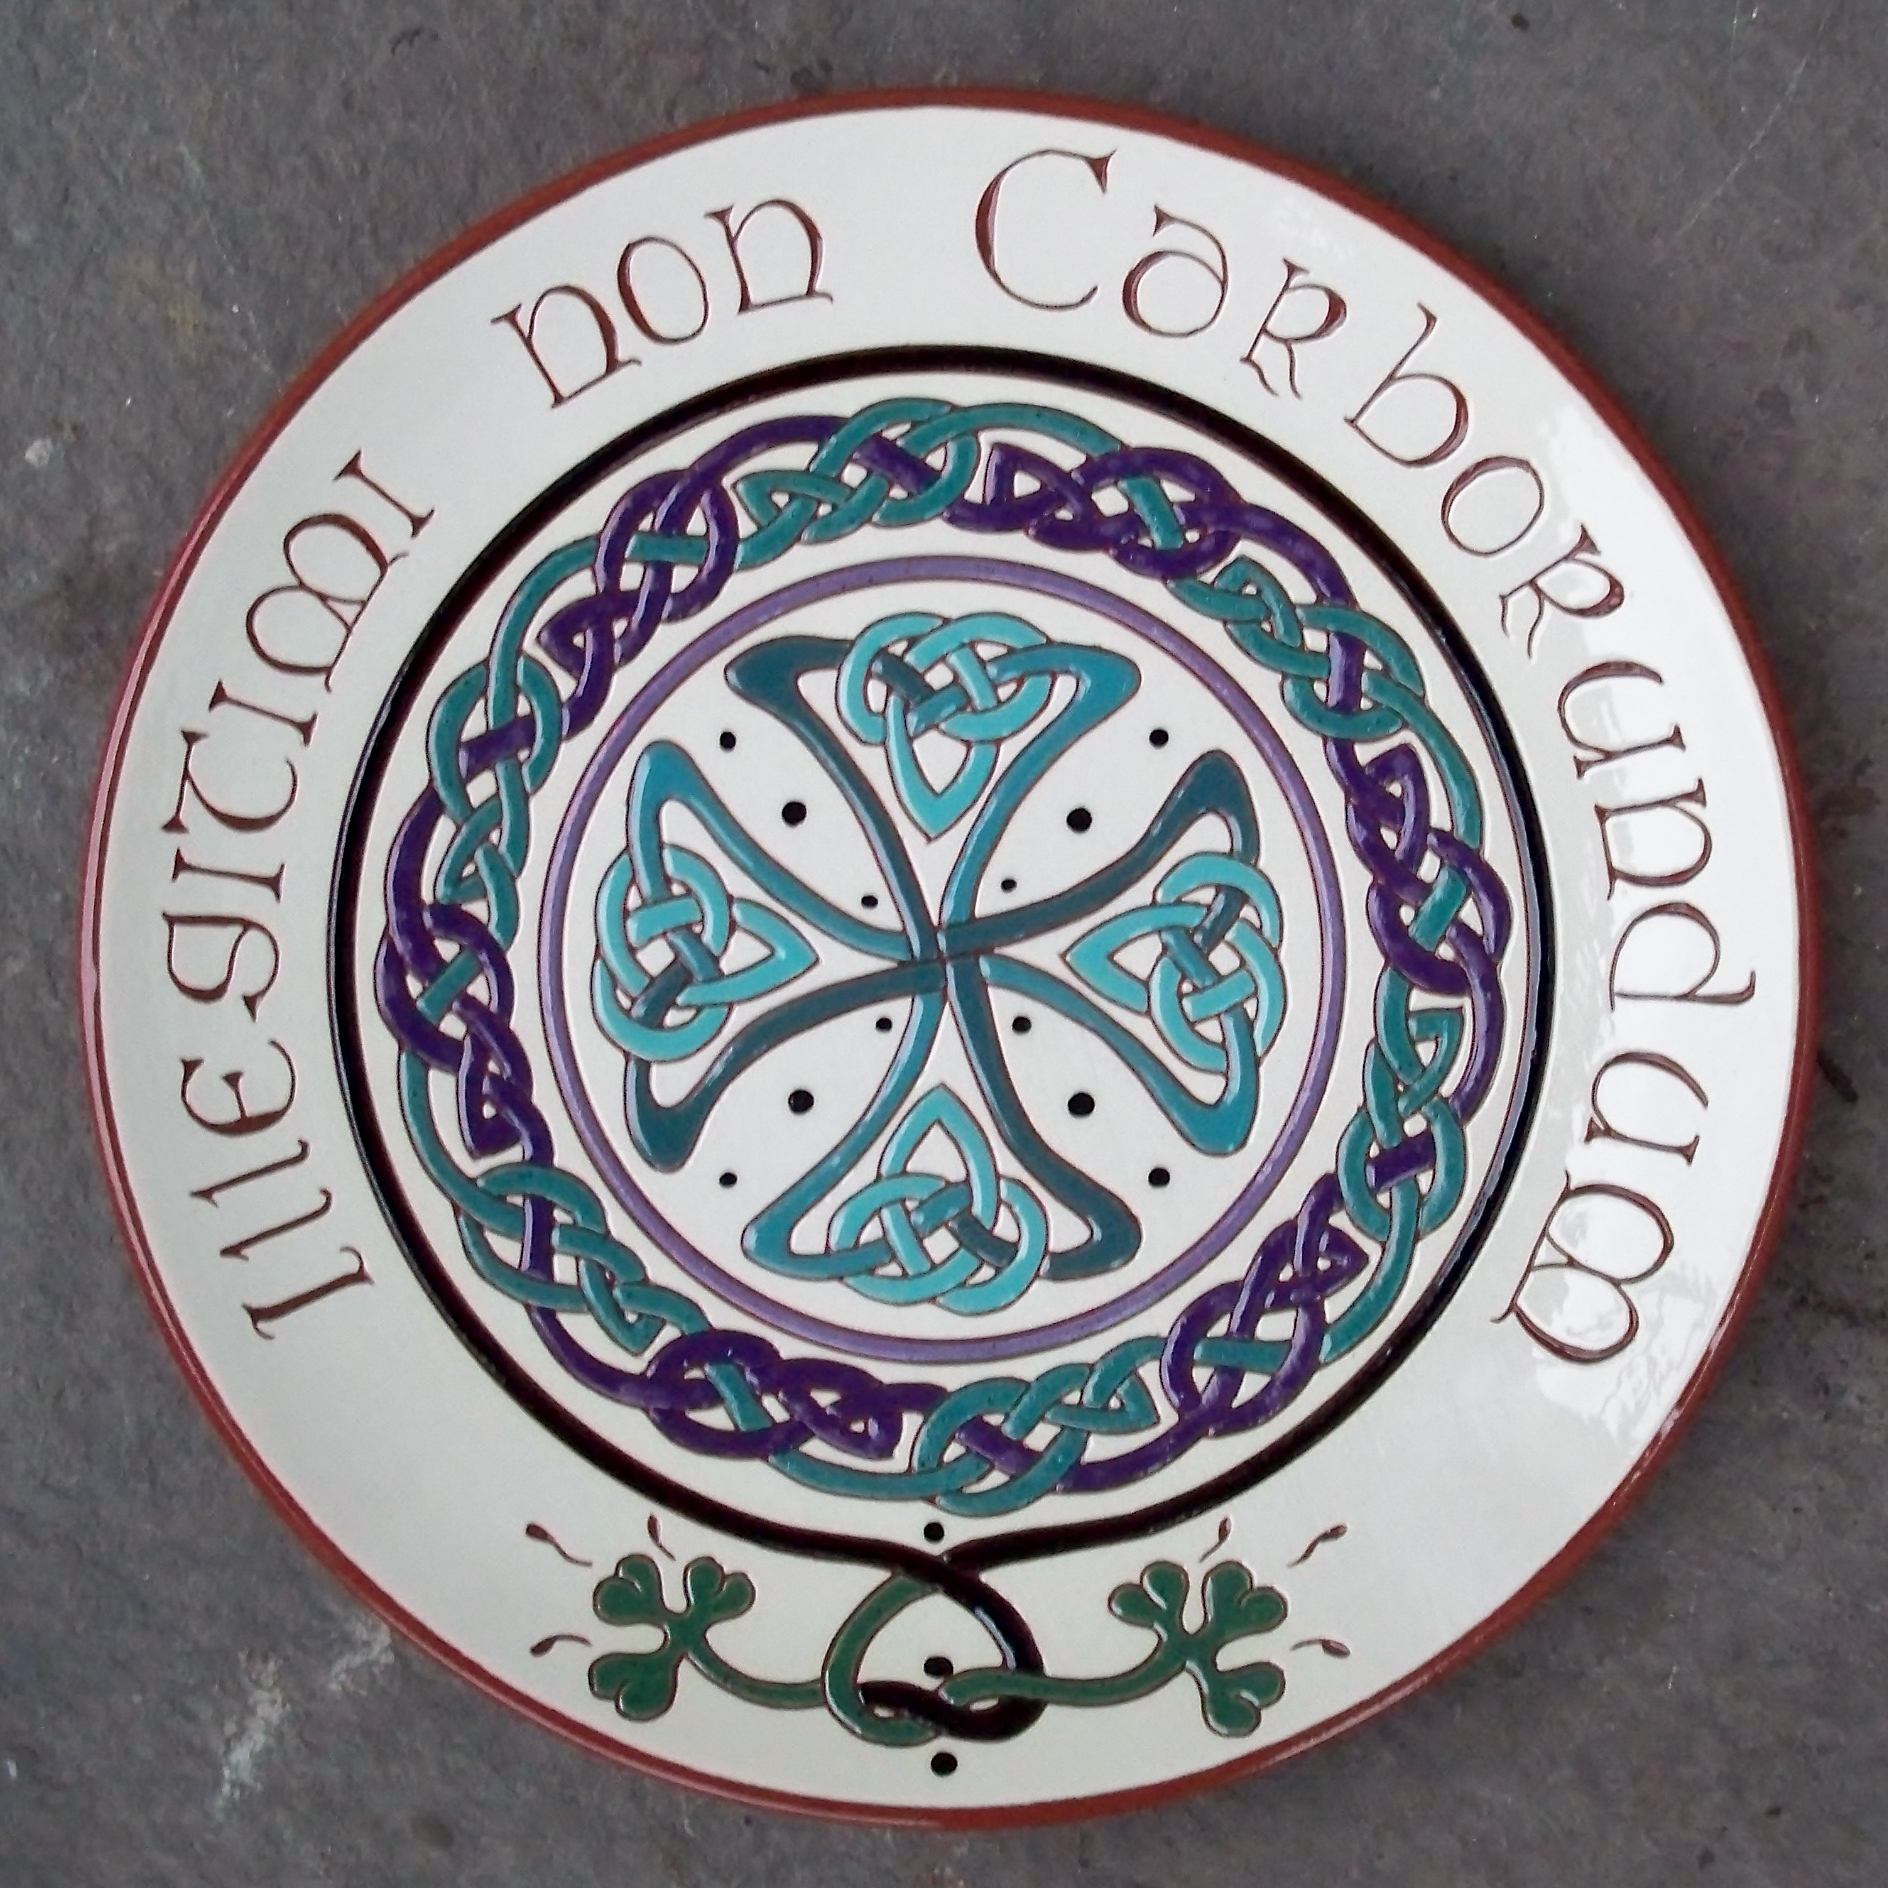 Redearthworks plate